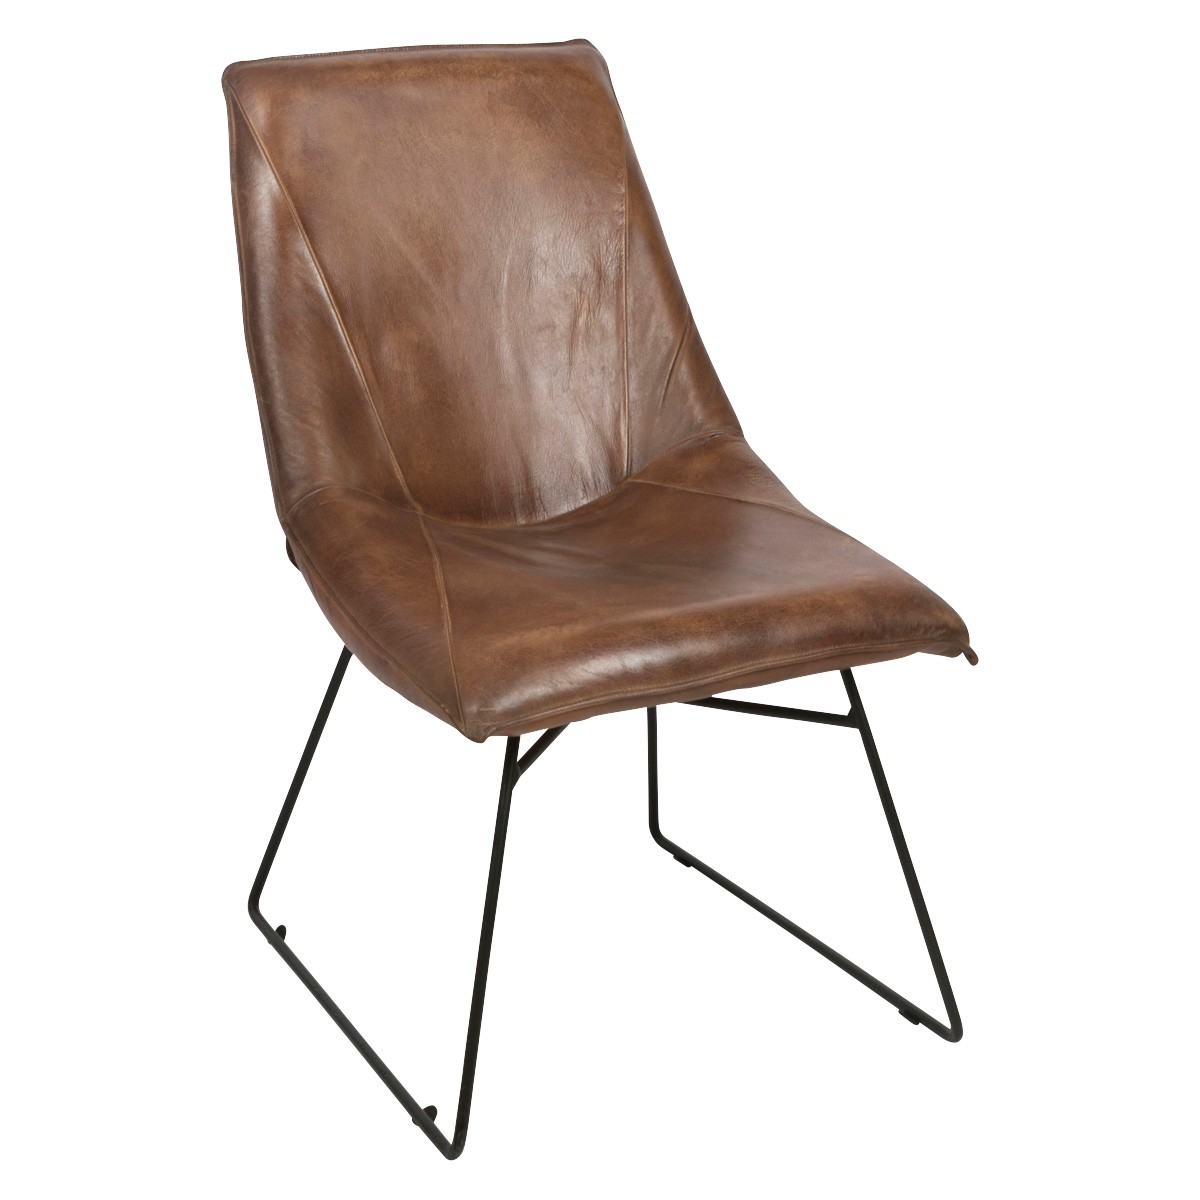 Manor Leather Occasional Lounge Chair, Tan